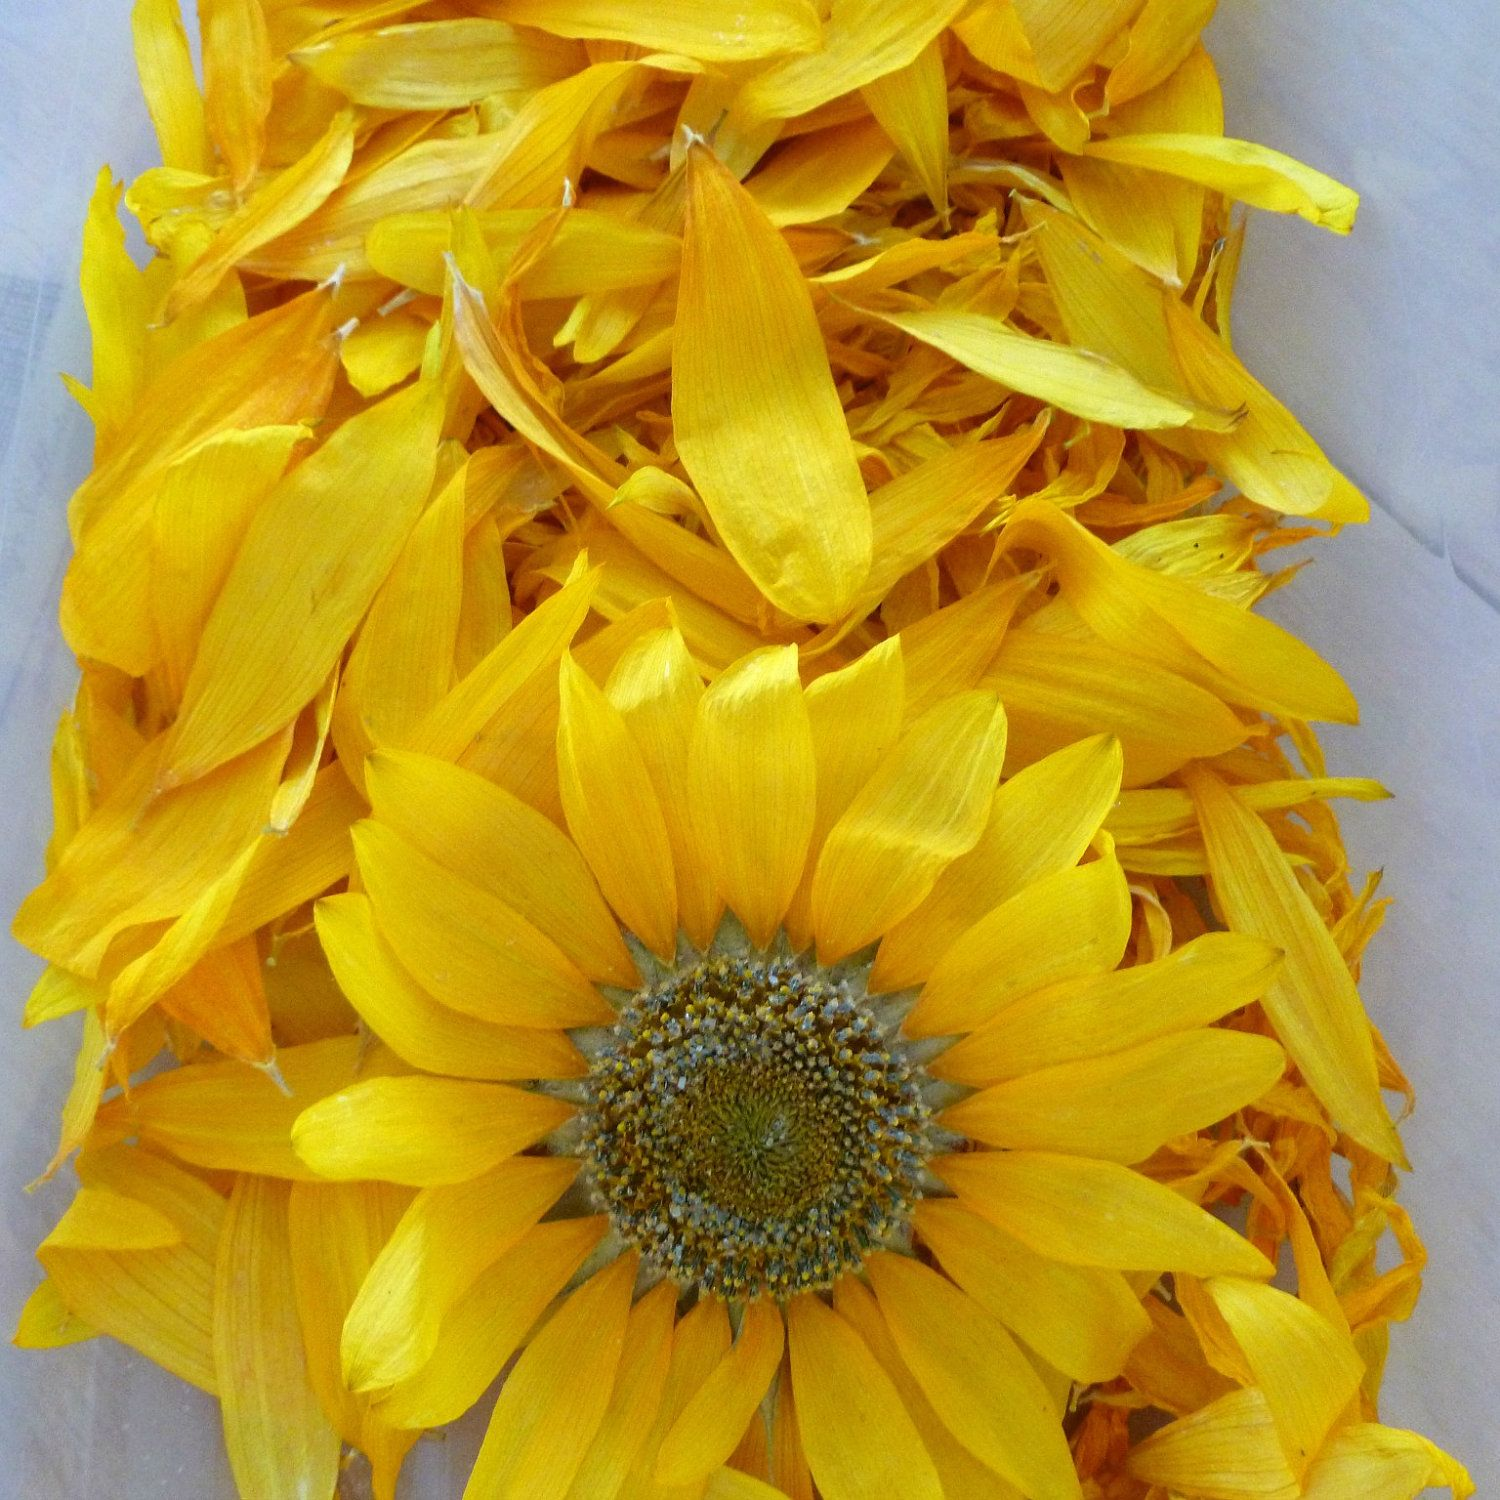 Sunflower Wedding Decorations Dry Sunflower Petals And